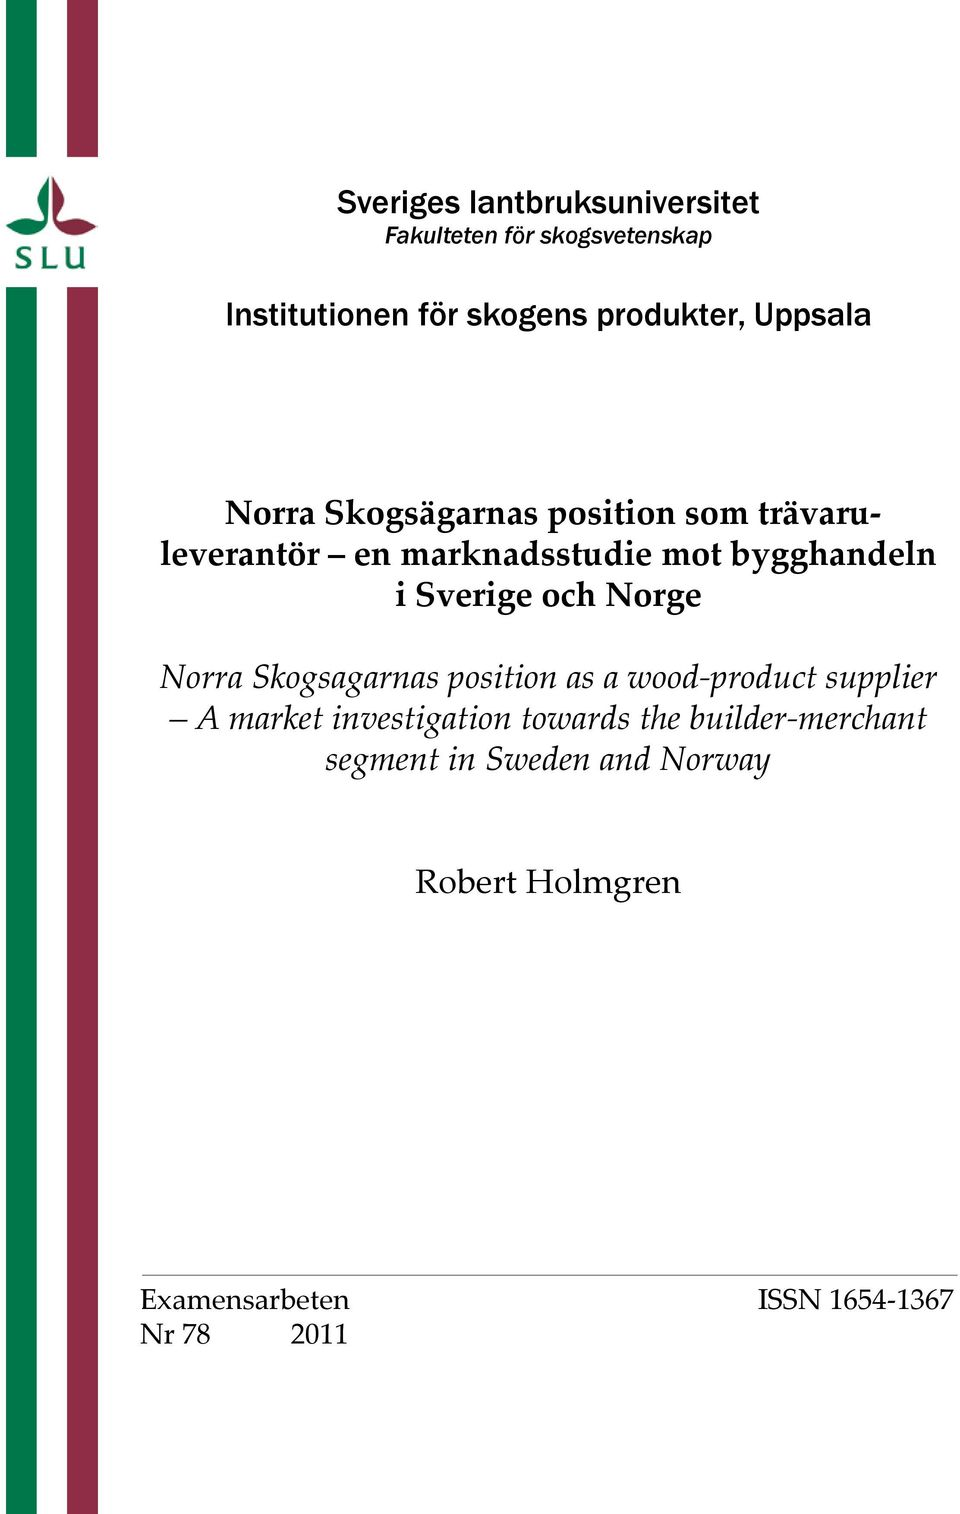 Sverige och Norge Norra Skogsagarnas position as a wood-product supplier A market investigation